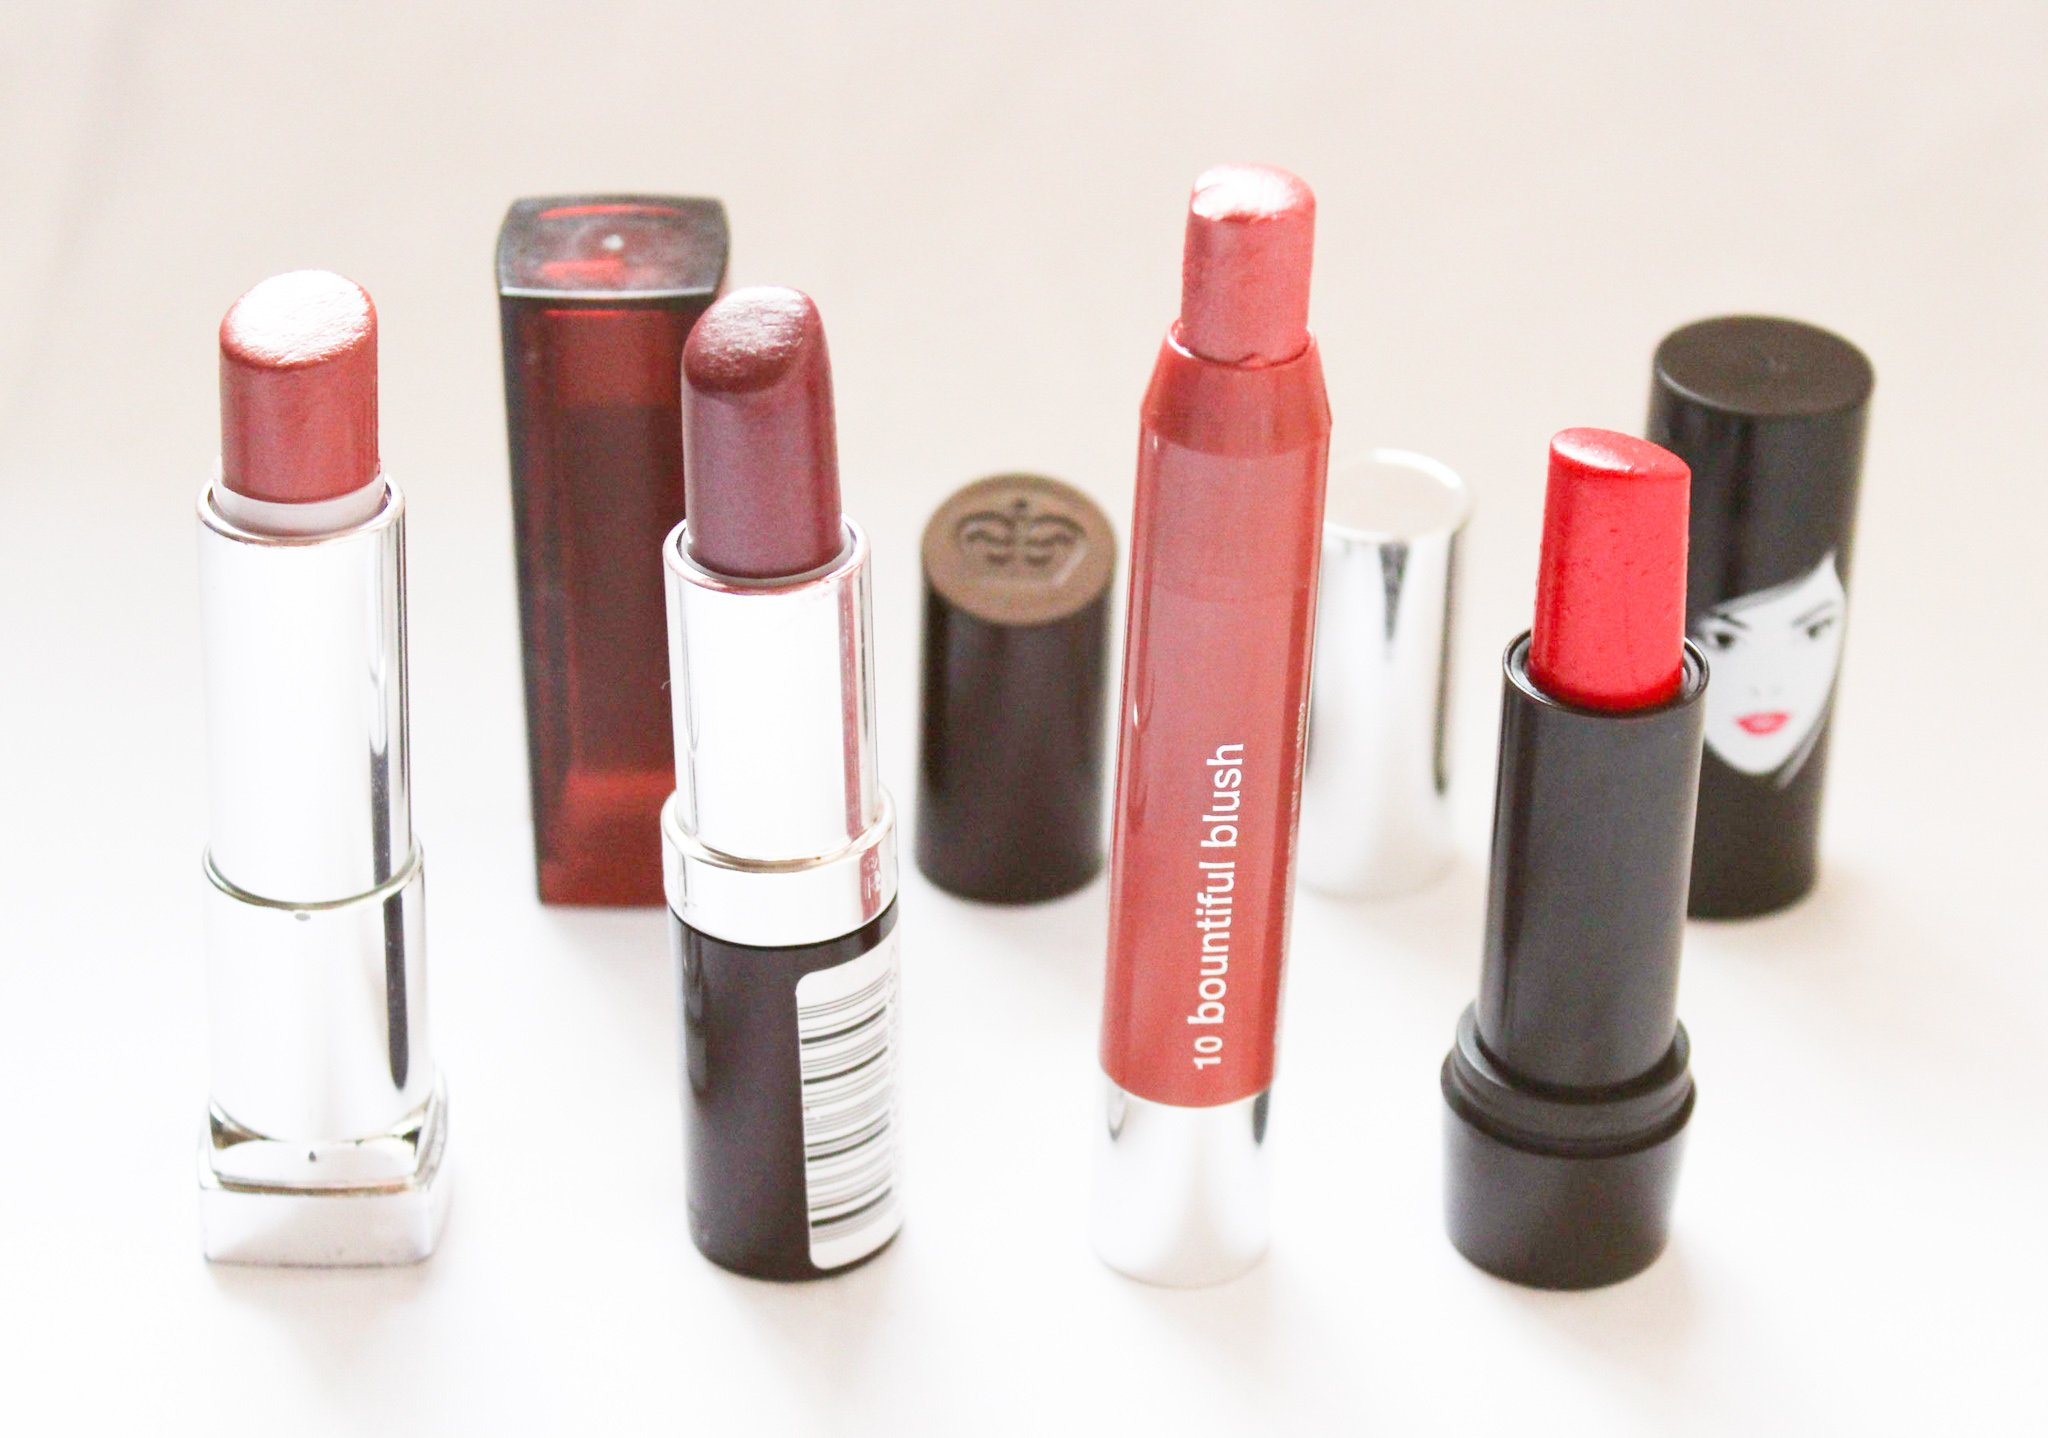 Project Pan & Declutter Lipsticks